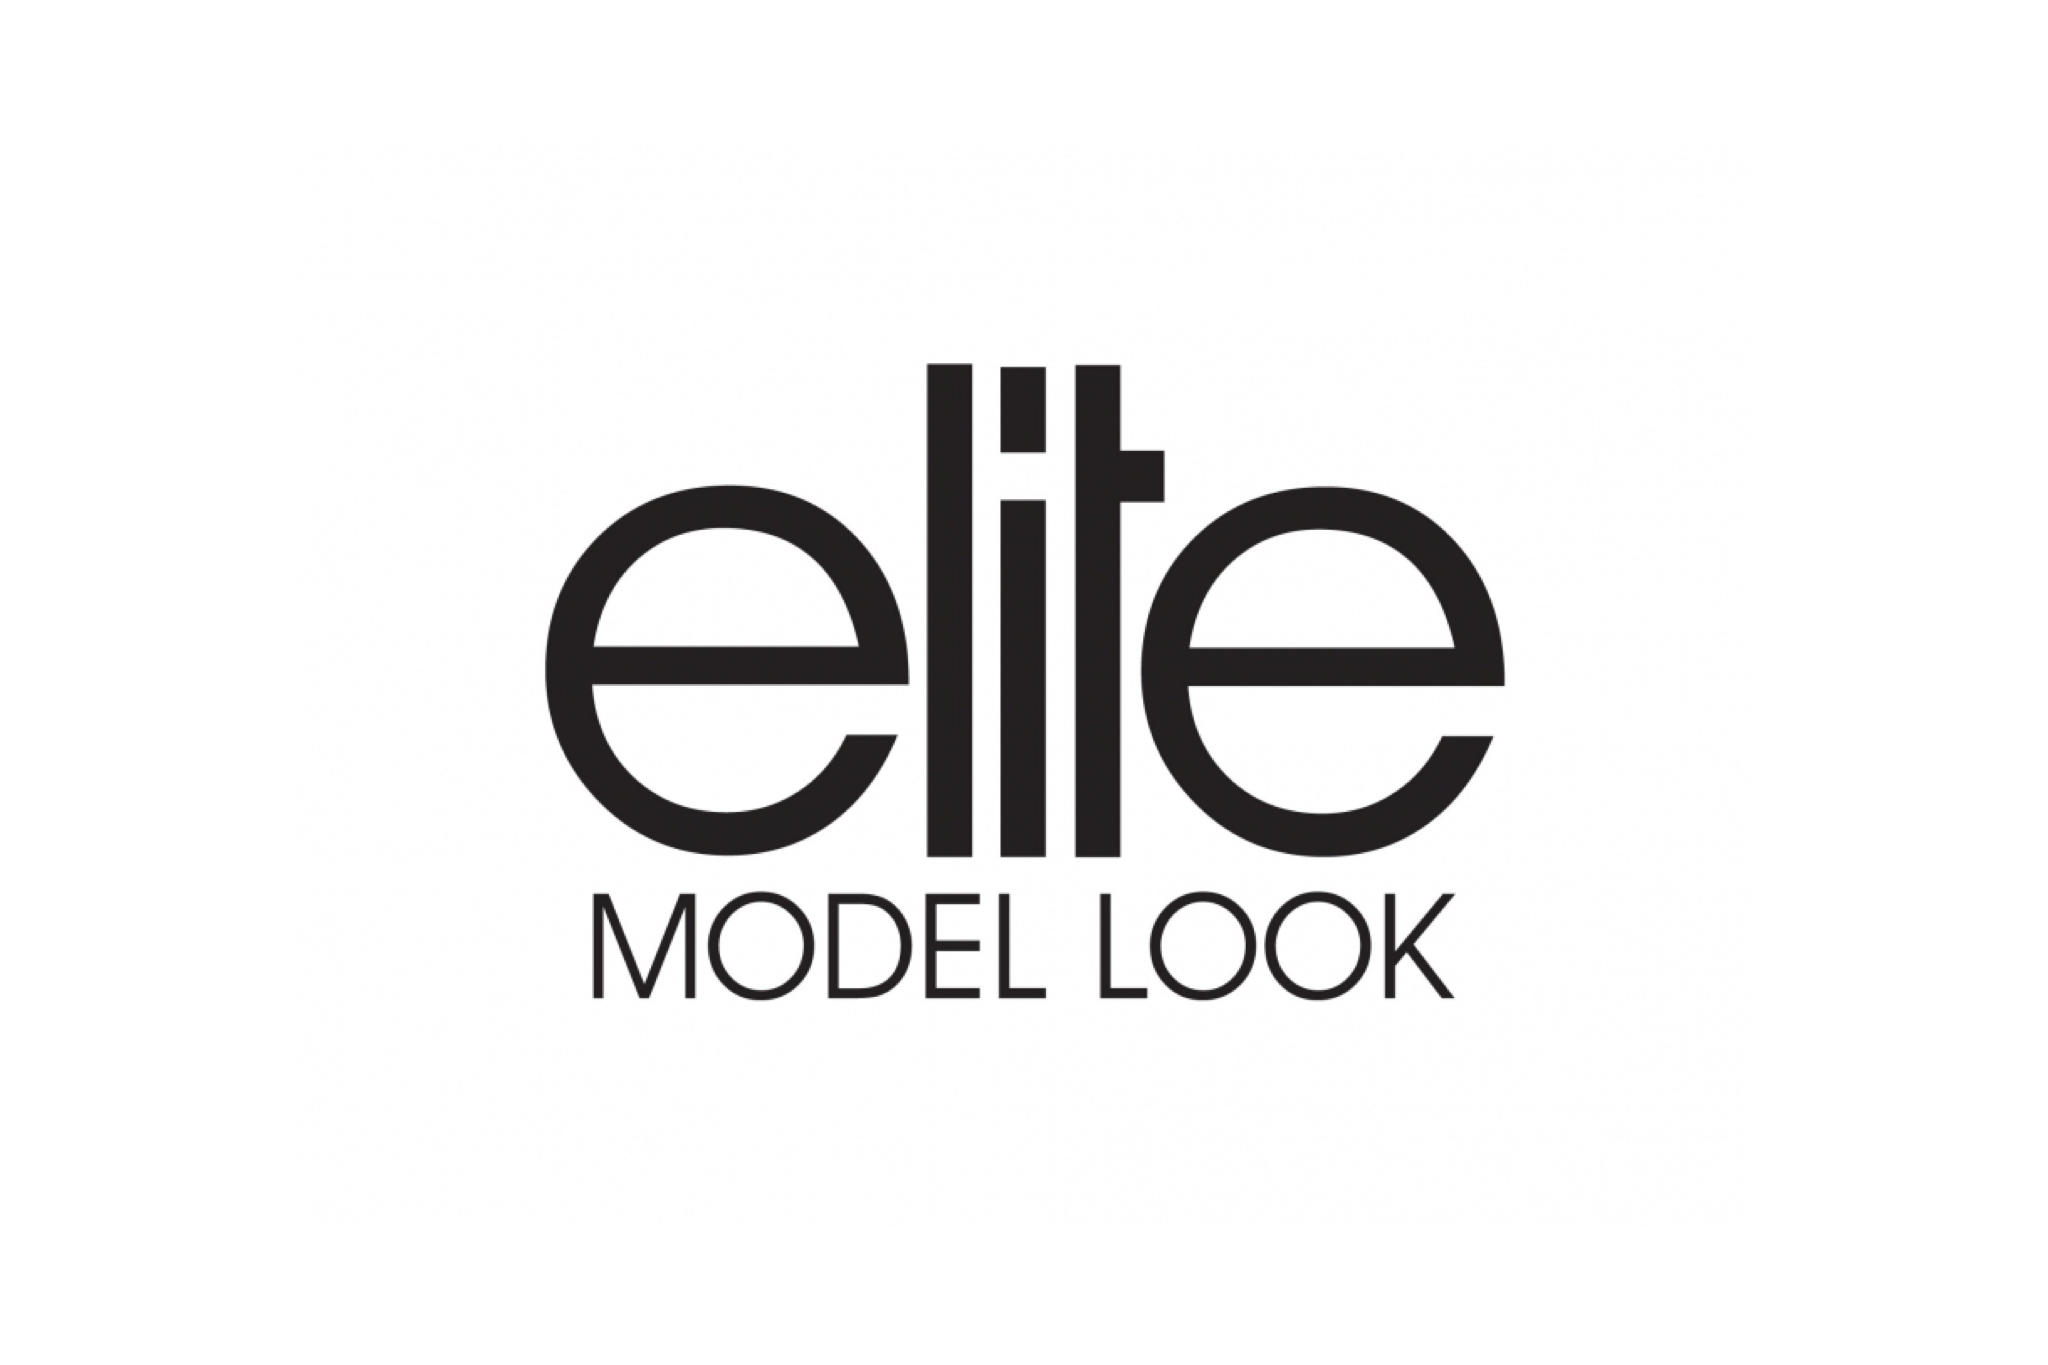 EML Superstar Tour 2019 CDMX - with love from Mexico City and lots of central American flavors - www.elitemodellook.com